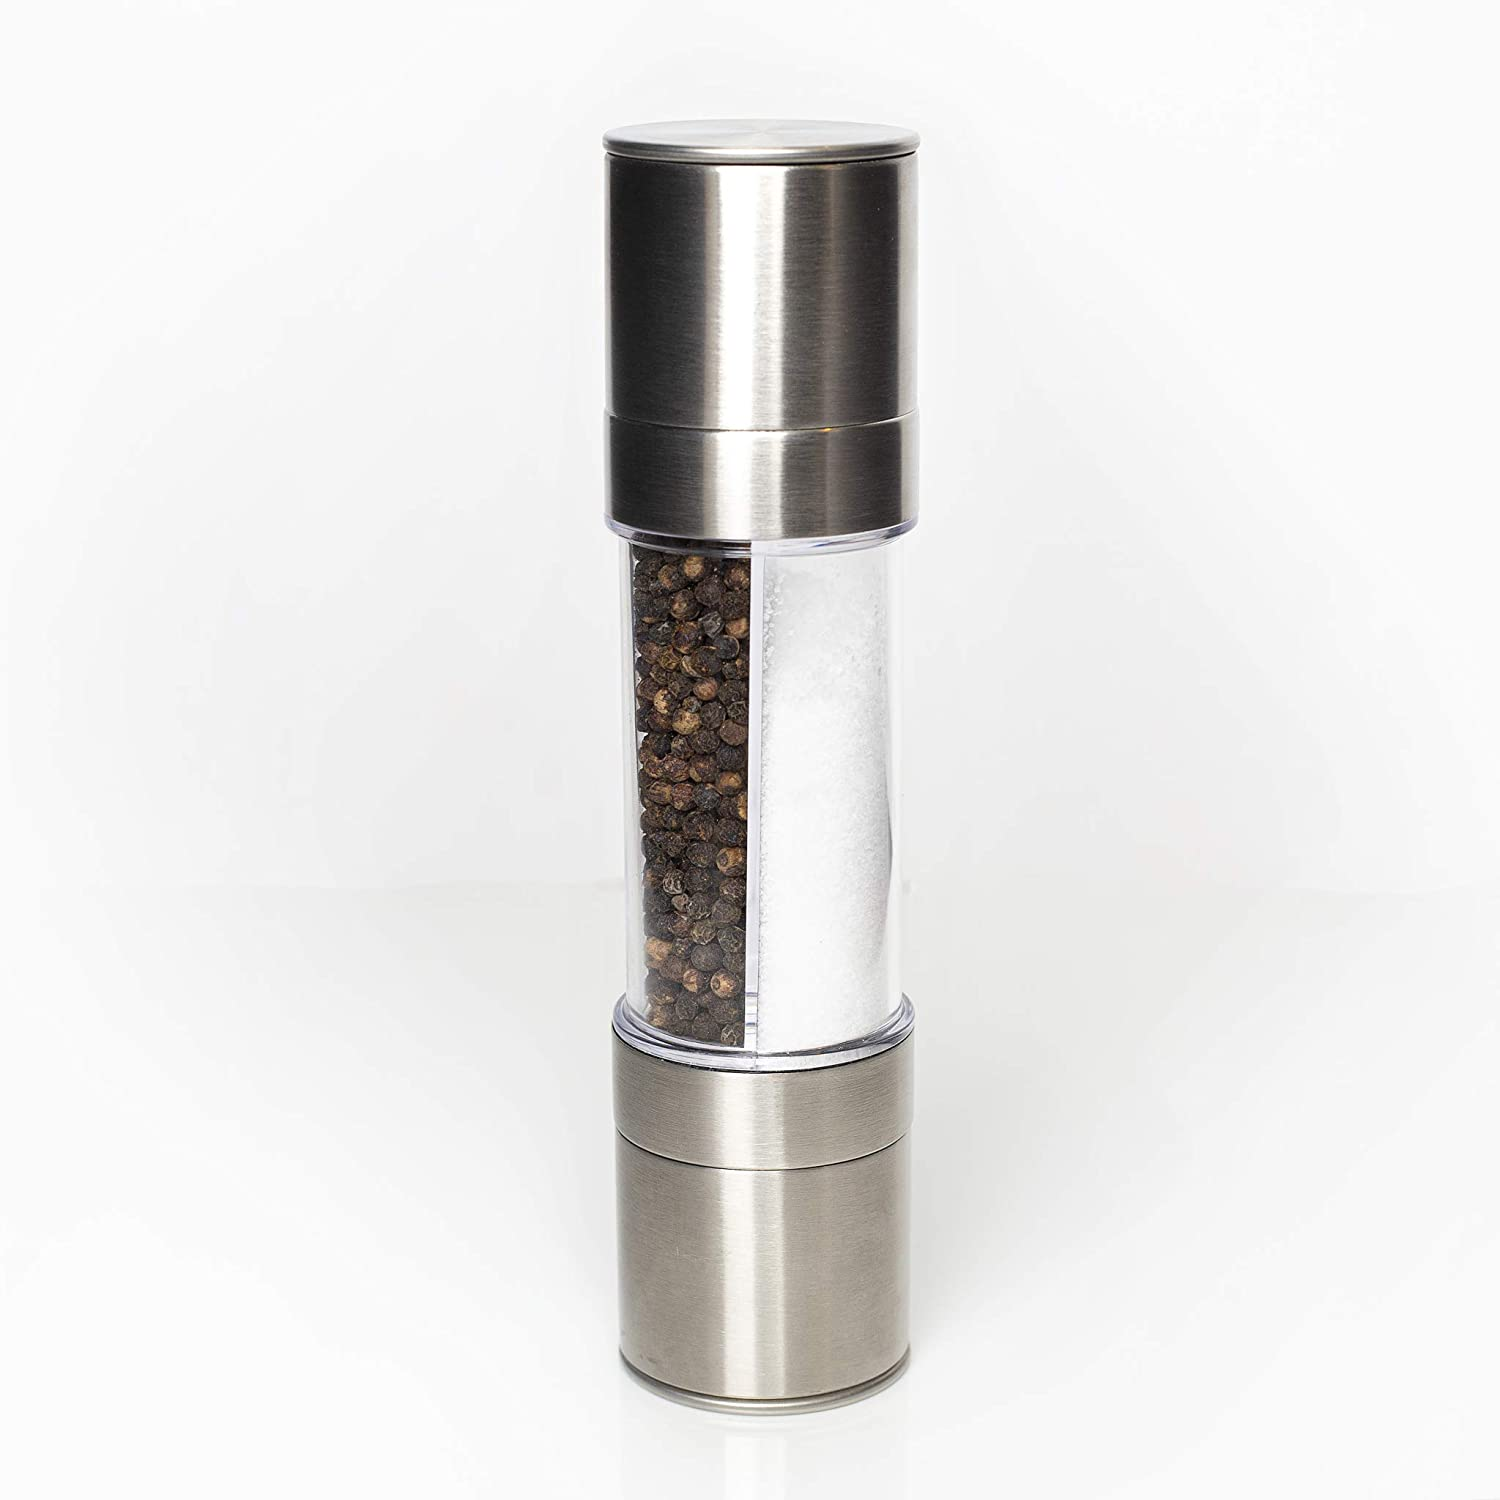 NATURE'S KITCHEN MARKET: Stainless Steel Dual 1 in Max 72% OFF Salt 2 New Orleans Mall Sea